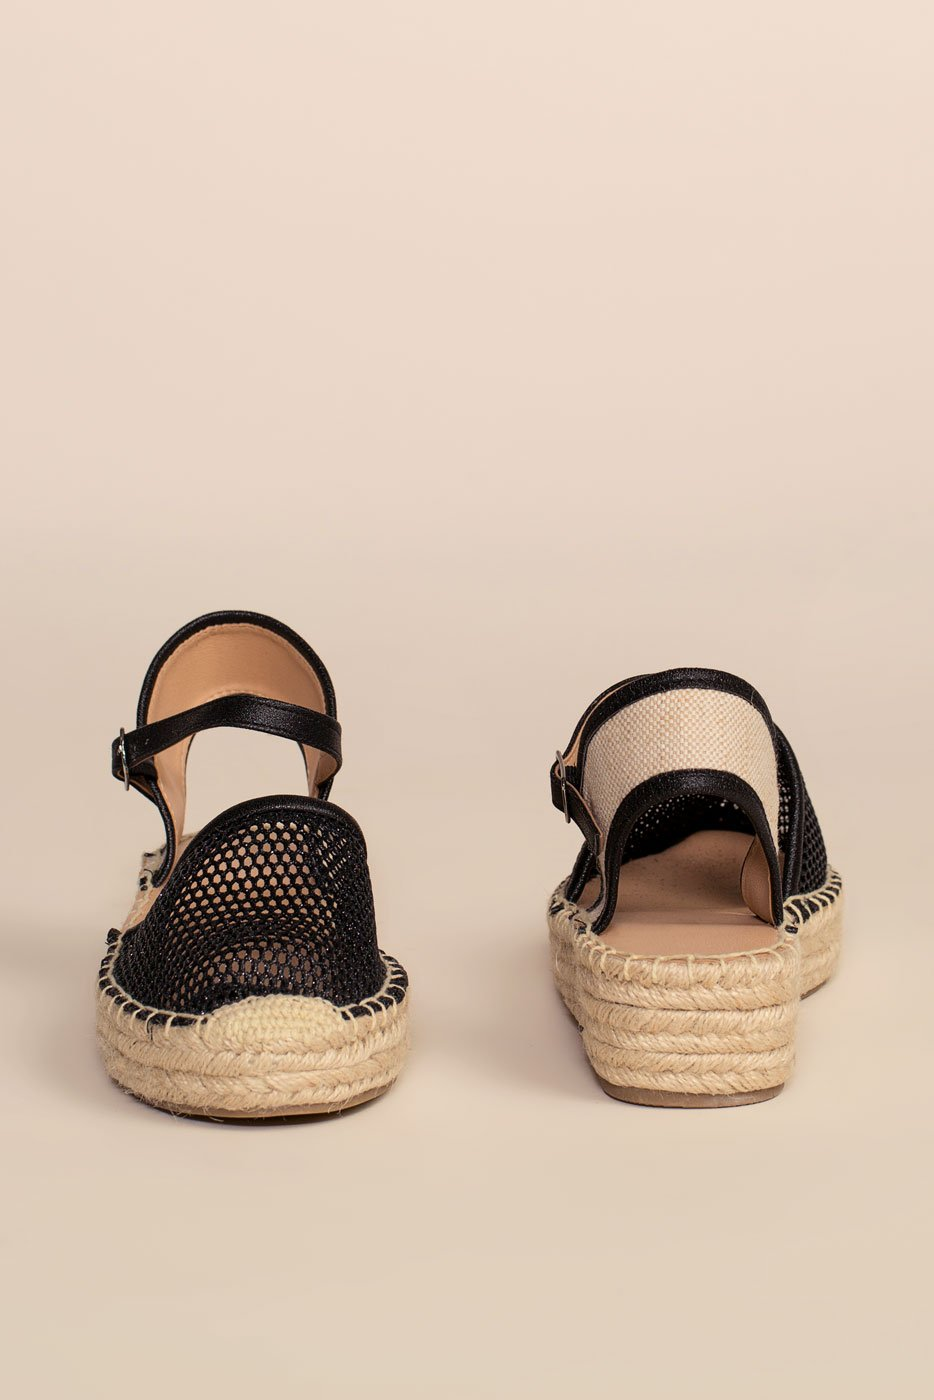 Shoes - Don't Mesh Around Sandals - Black